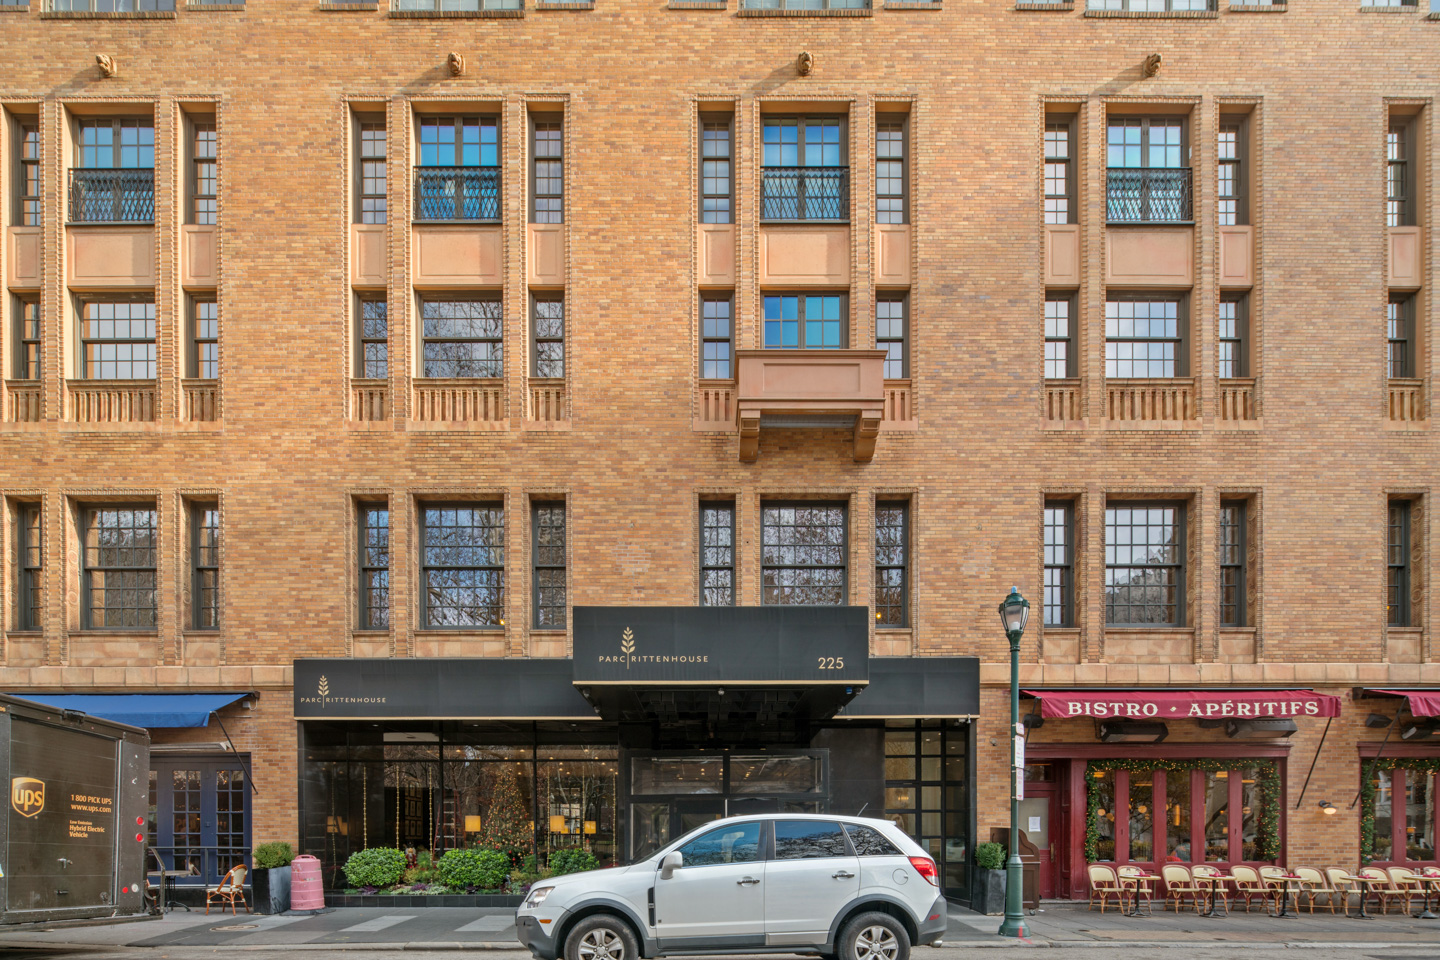 Parc 1 Bedroom at a great price!  Live on the on the Square in one of Parc's largest 1 bed layouts!  Open floorplan features Brazilian Cherry Hardwood Floors, high ceilings, marble bathroom and a super nice kitchen with granite countertops and a stainless appliances. The unit features an open floor plan that includes a very nice balcony that overlooks the interior courtyard!  There are over lots of upgraded recessed lights! The large bedroom features a super large custom built walk in closet!   Parc has a pool, a deck with skyline views, a fitness room and an owners lounge!  Not to mention, you are living on Rittenhouse Square!  Closet to everything center city has to offer!